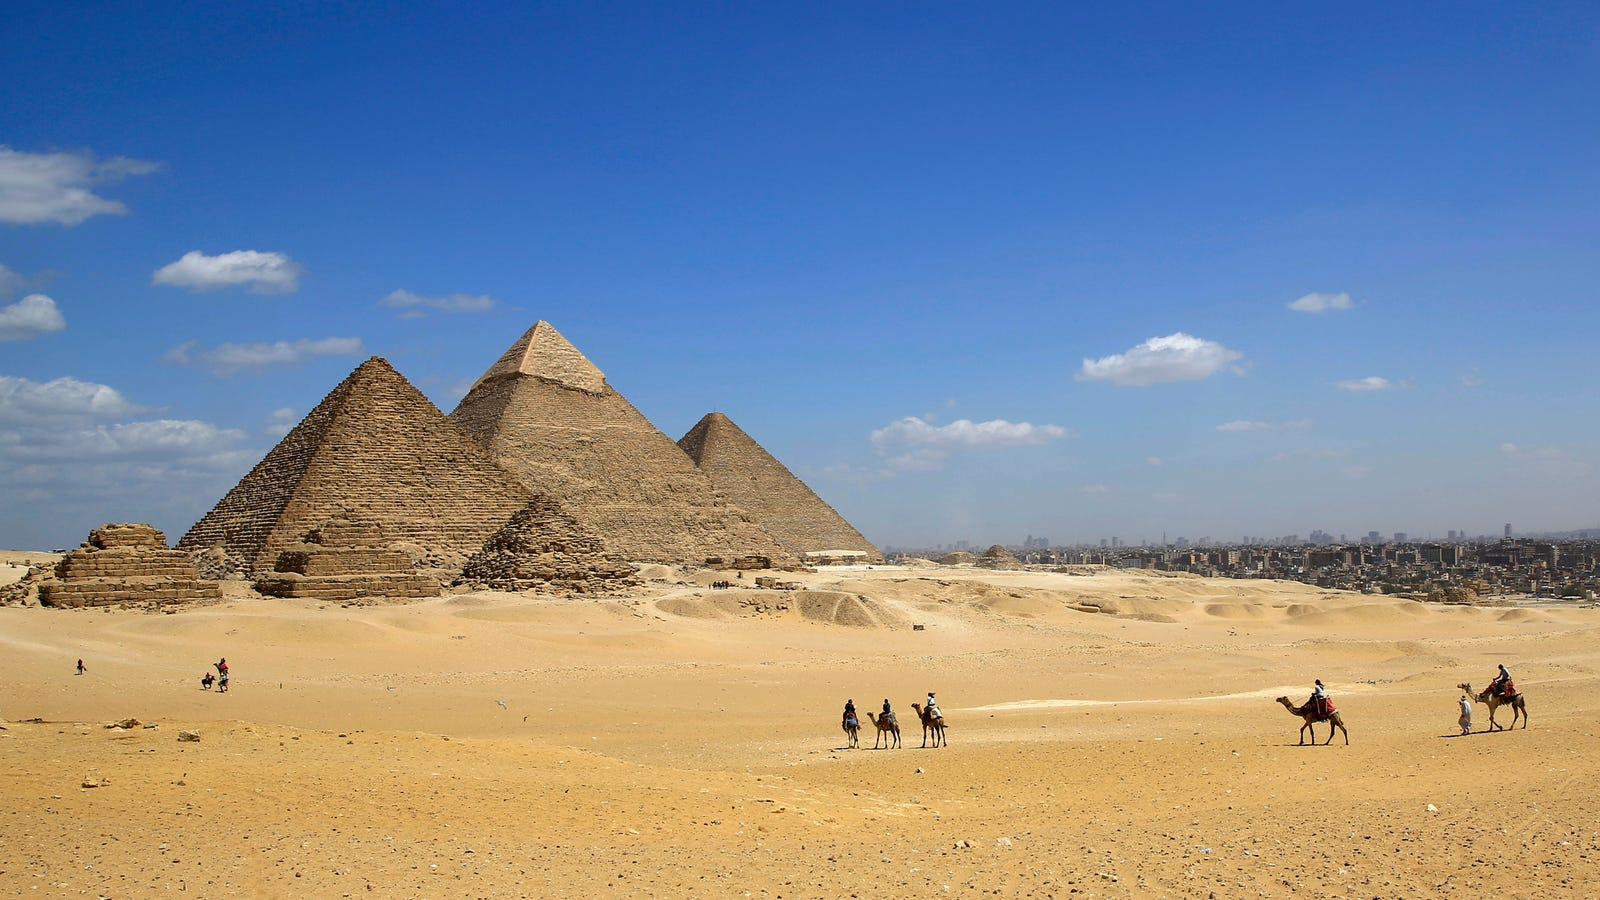 photo image Egyptian Officials Are Pissed About an Alleged Nude Photoshoot on the Great Pyramid